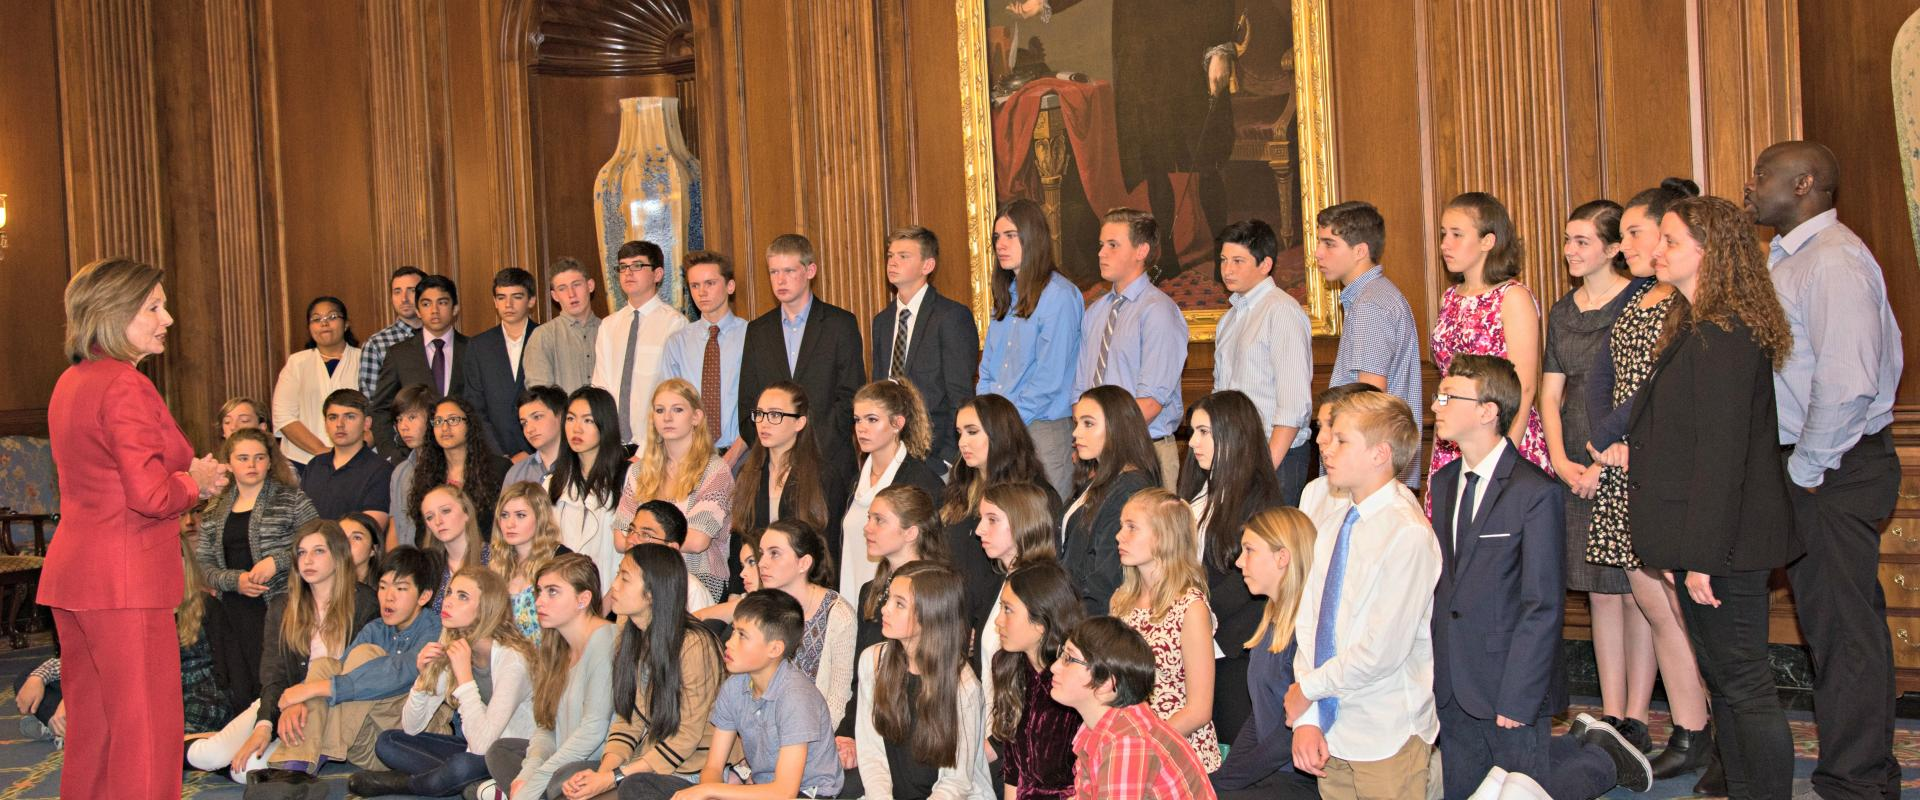 Congresswoman Nancy Pelosi meets with eighth-graders from the Live Oak School in Potrero Hill. During their visit to Capitol Hill, the students educated the Congress about their class project on gun violence prevention.